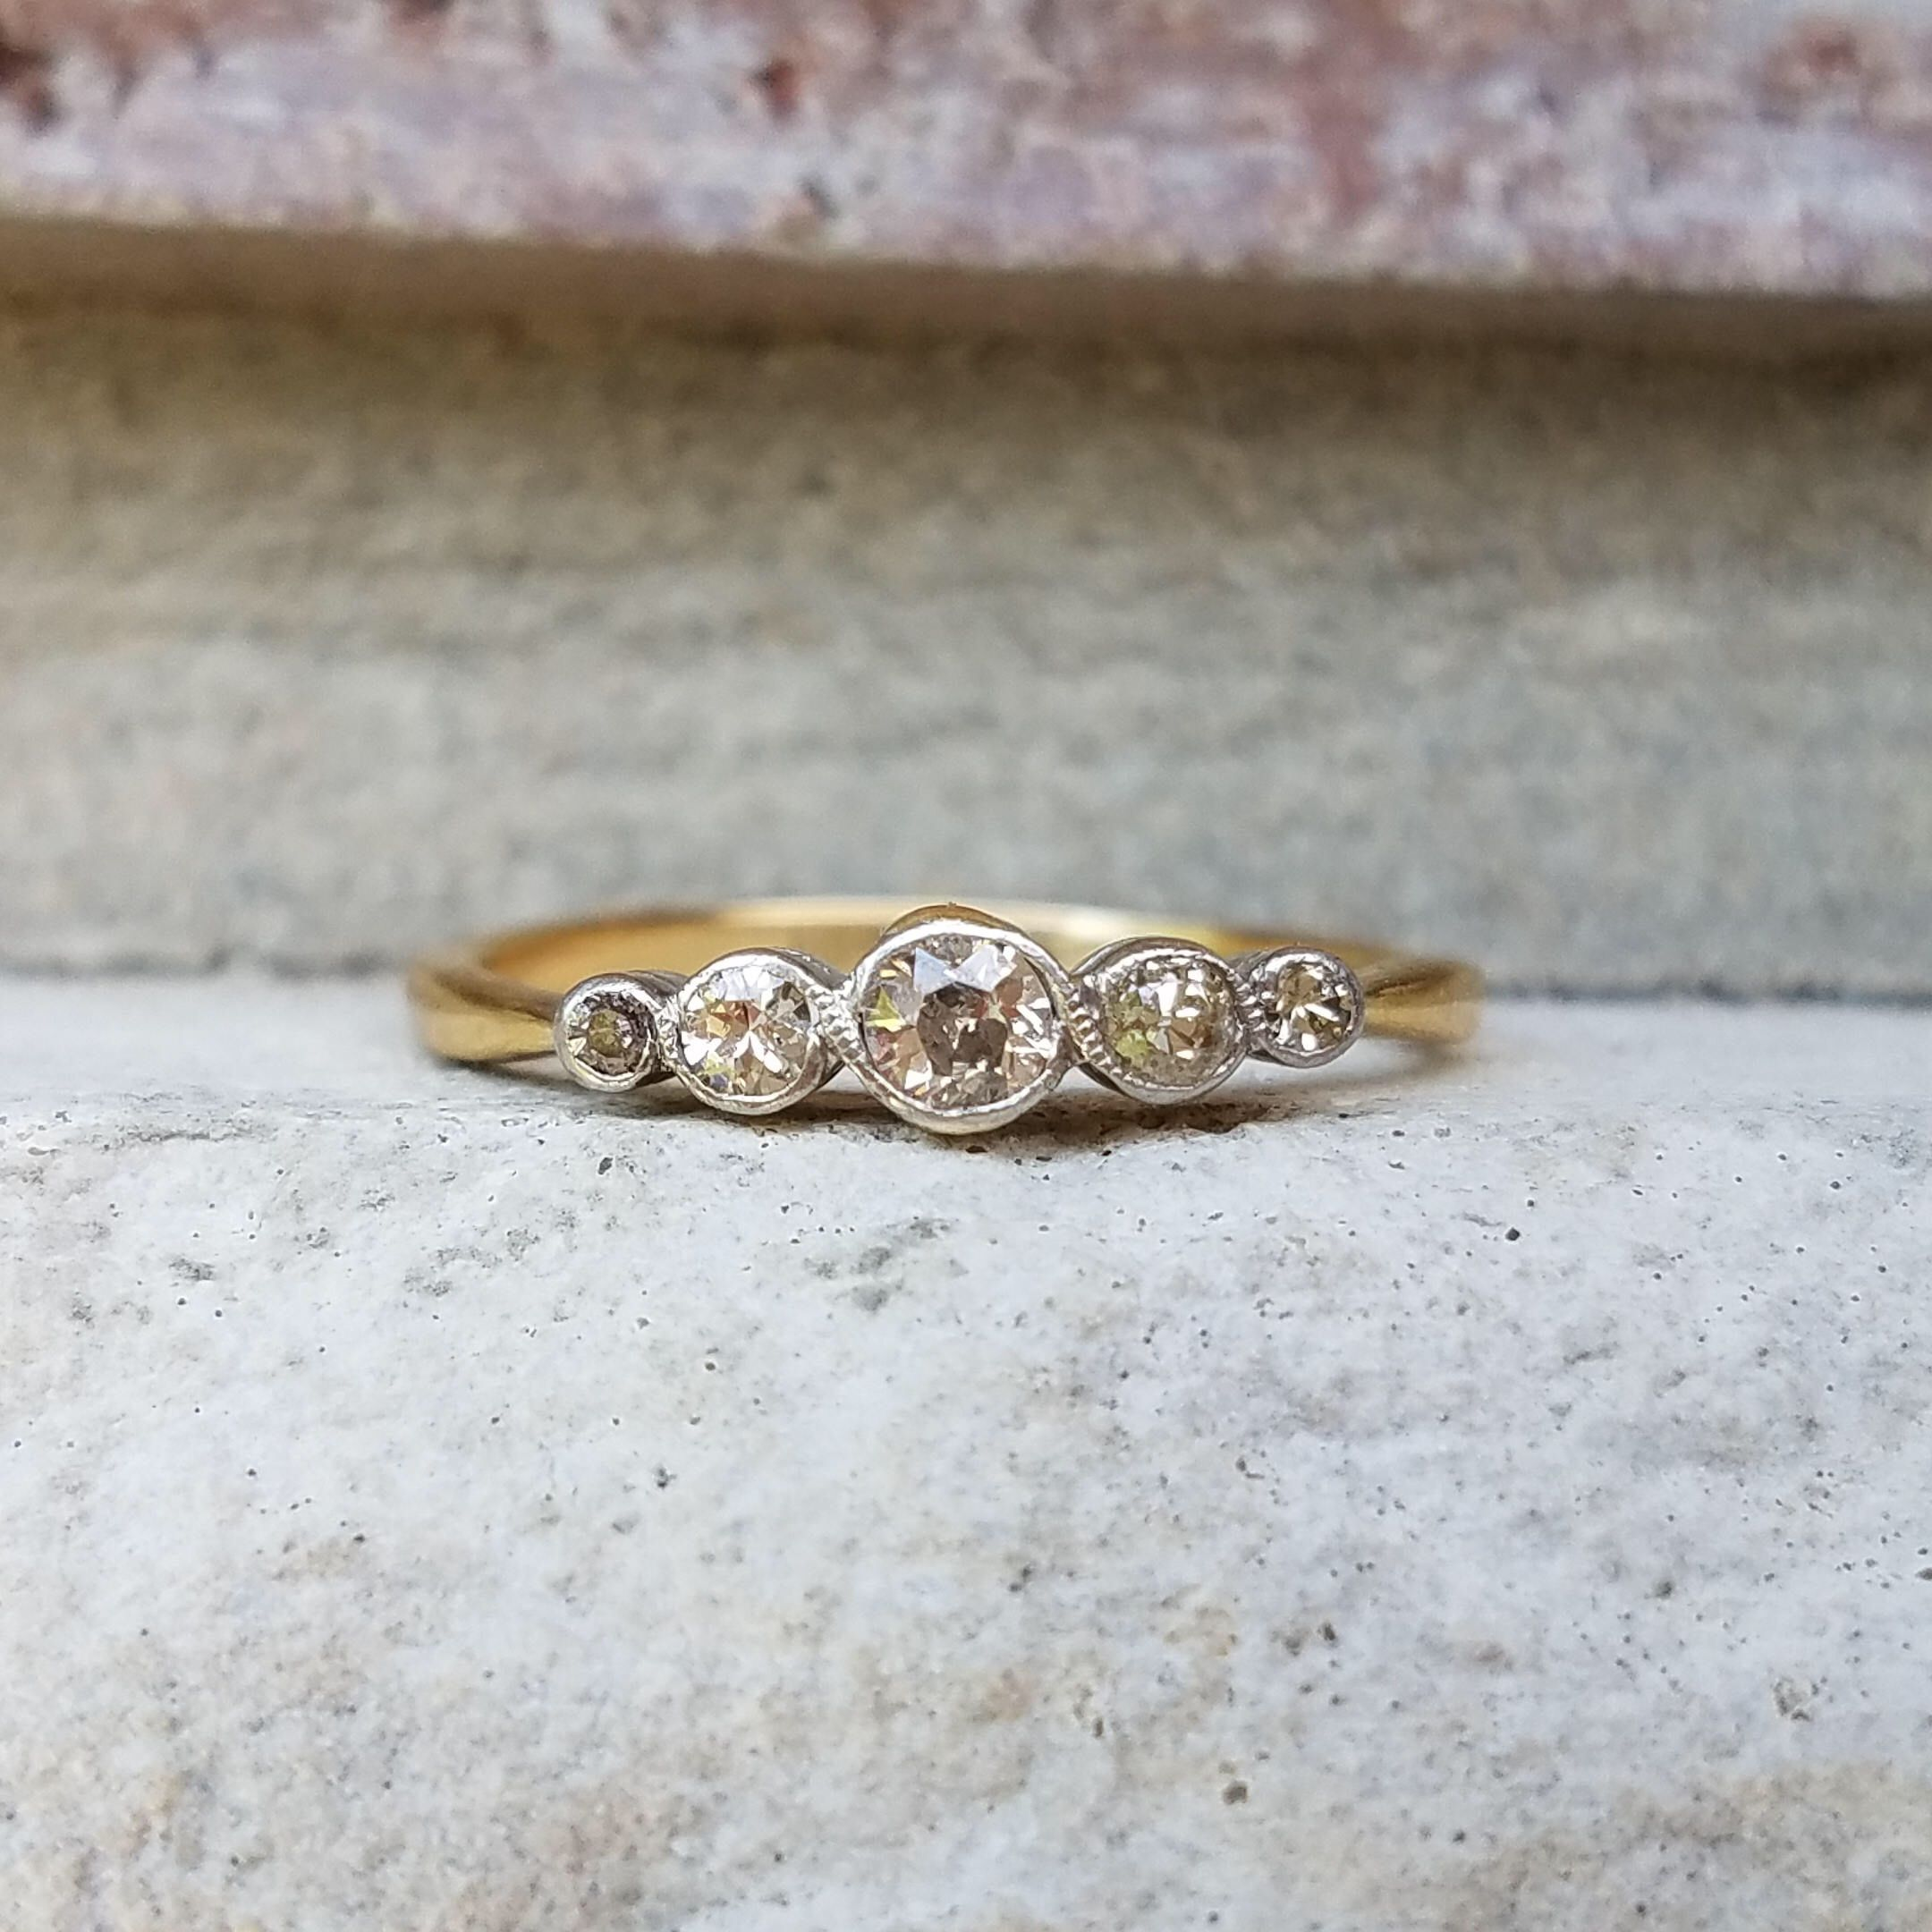 products marie ring diamond and amarie antique bezel size ready halo ship bands style to yellow rosecut gold